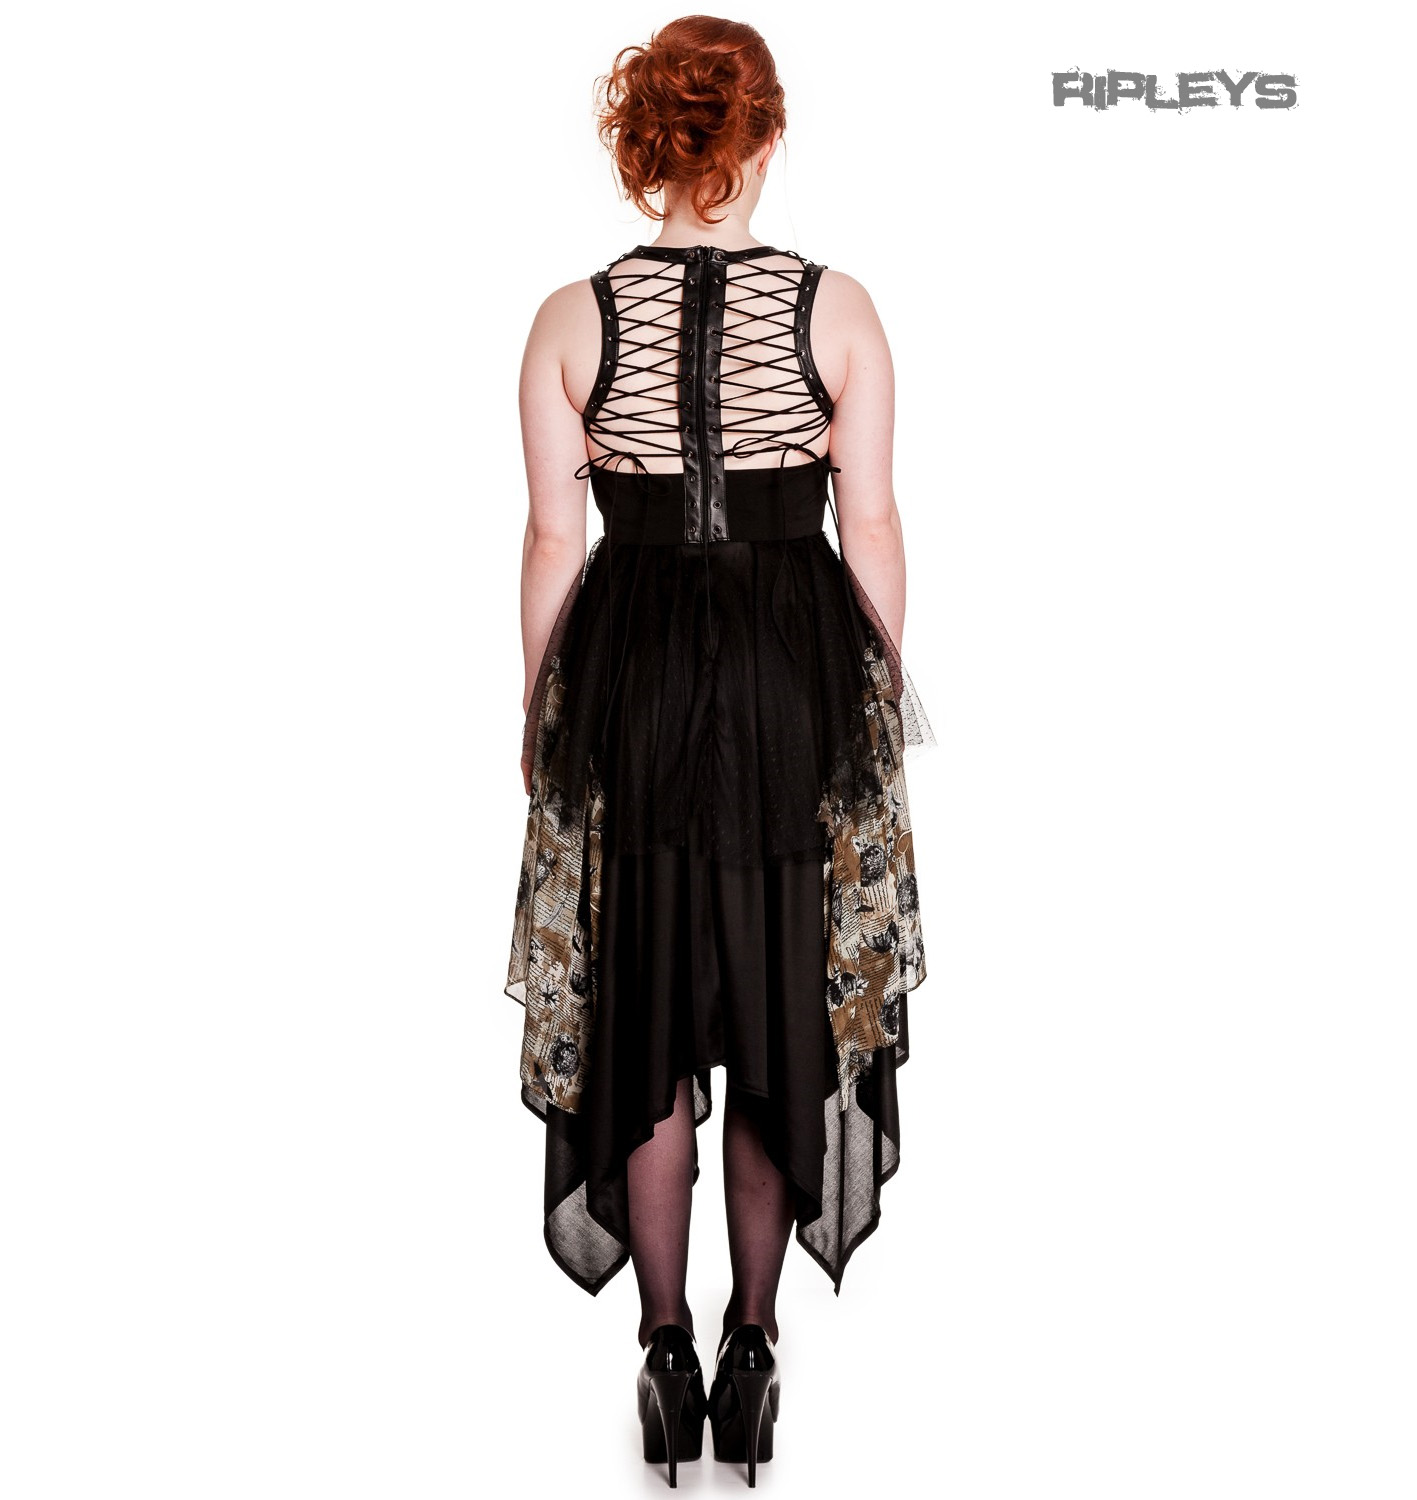 Hell-Bunny-Spin-Doctor-Goth-Black-Dress-ECLIPSE-Grunge-Steampunk-All-Sizes thumbnail 4